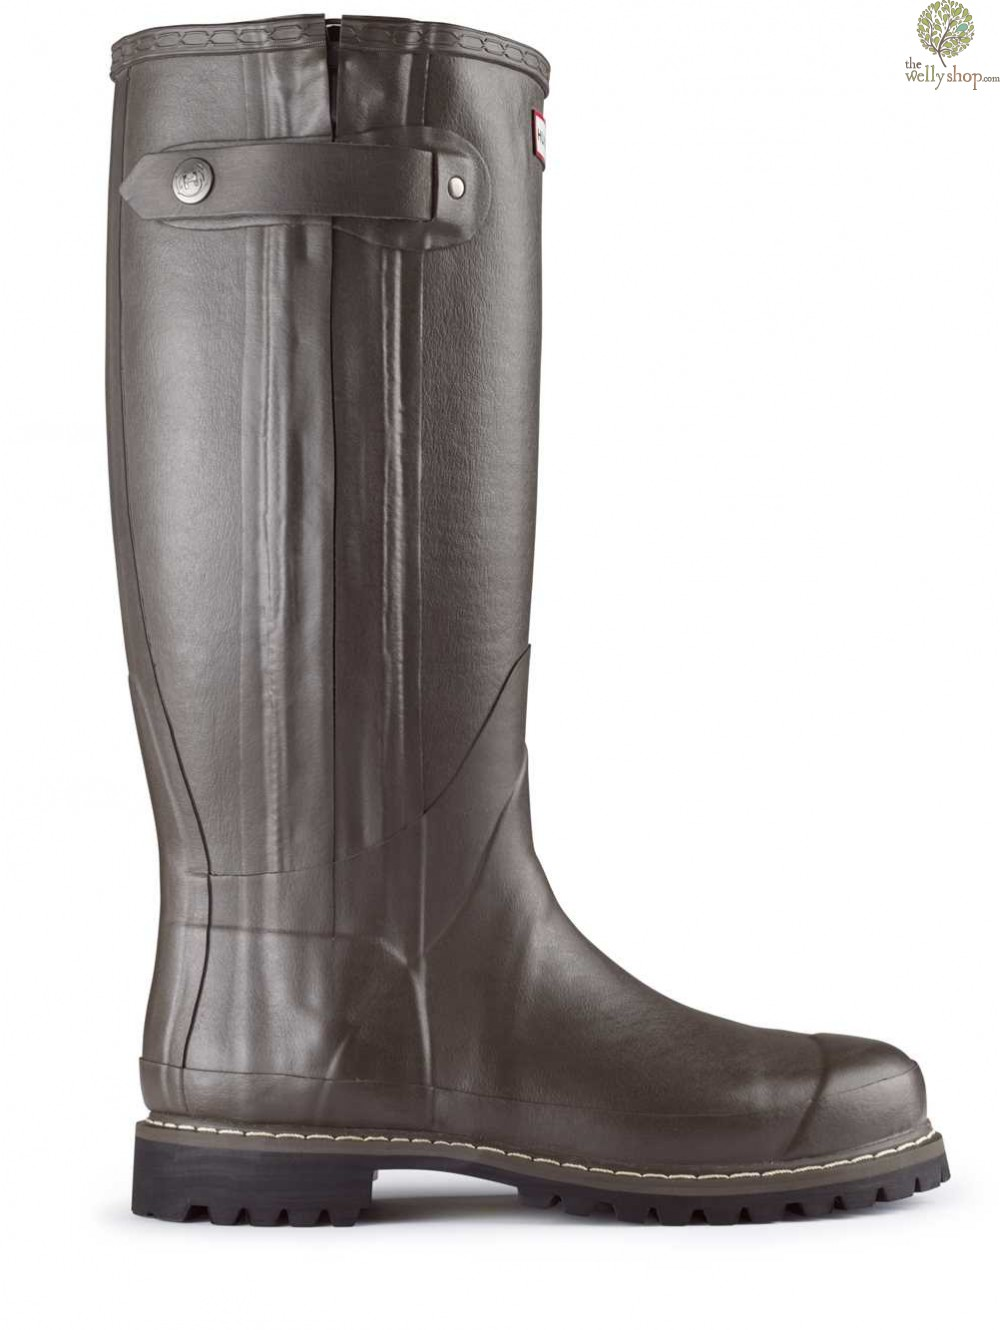 balmoral sovereign rubber boots with leather lining